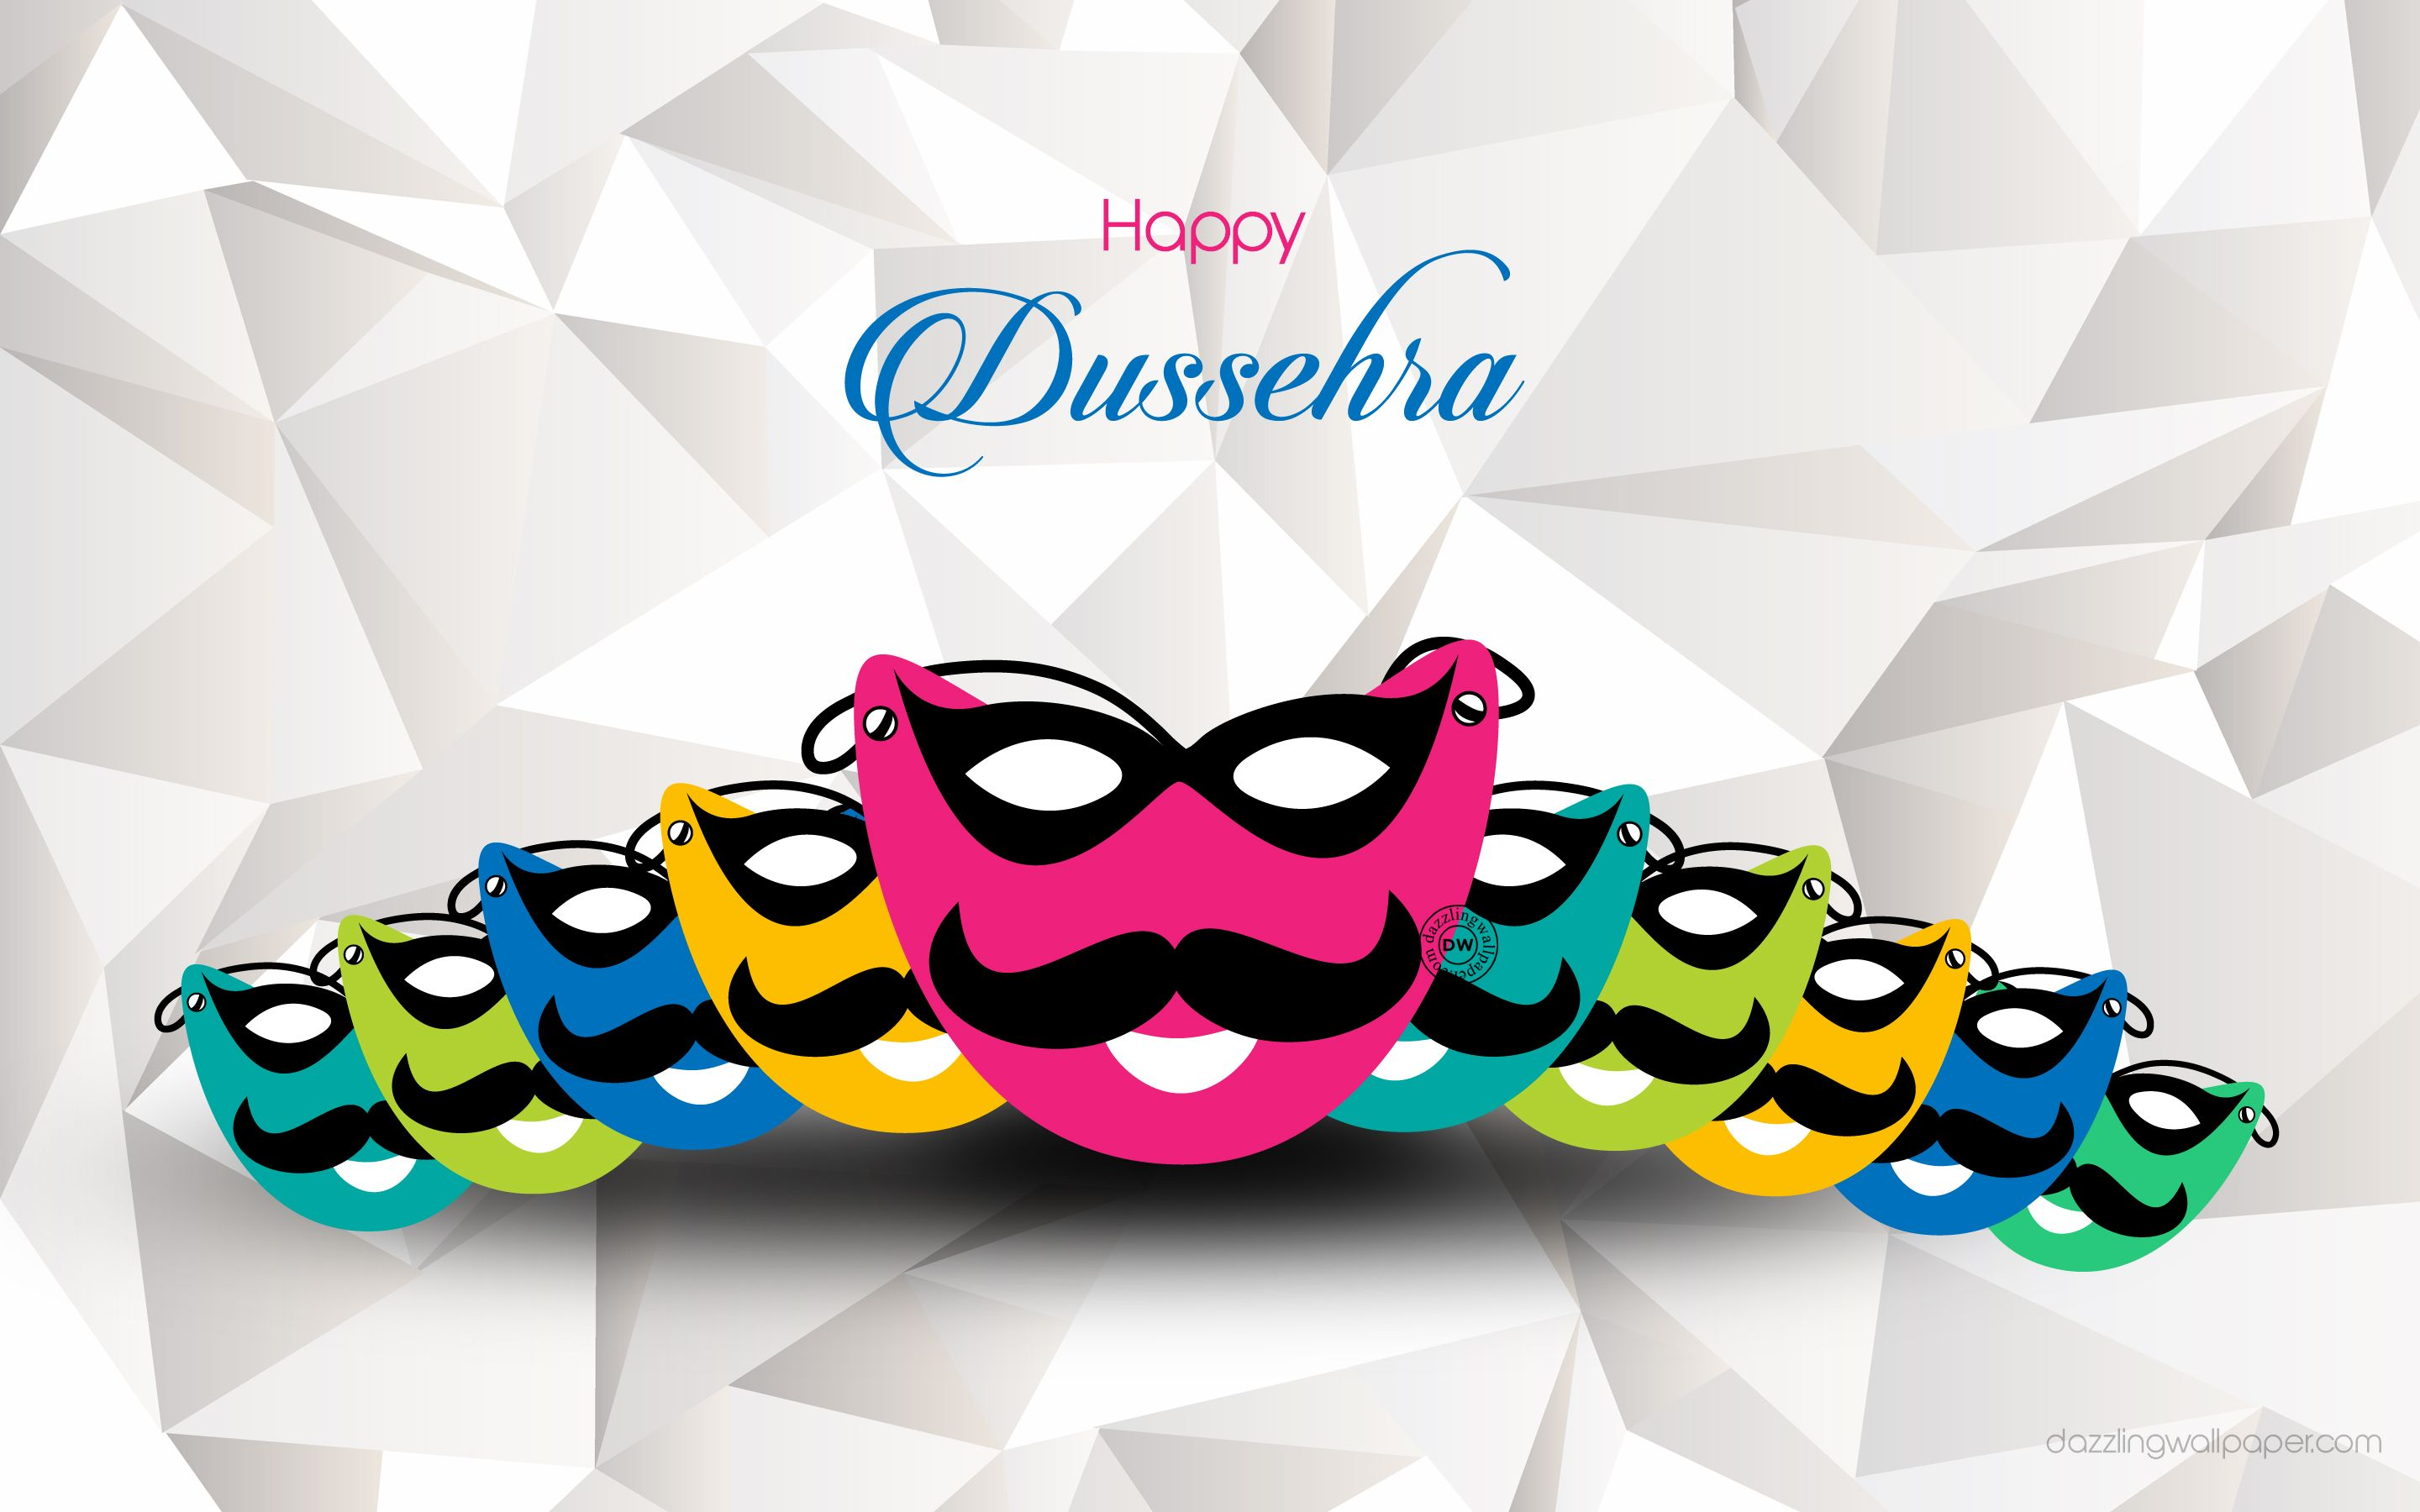 Dussehra hd wallpaper free download dussehra dassera vijaya dussehra hd wallpaper free download dussehra dassera vijaya dashami ravan dahan 2013 hd images wallpapers wishes durga maa greetings m4hsunfo